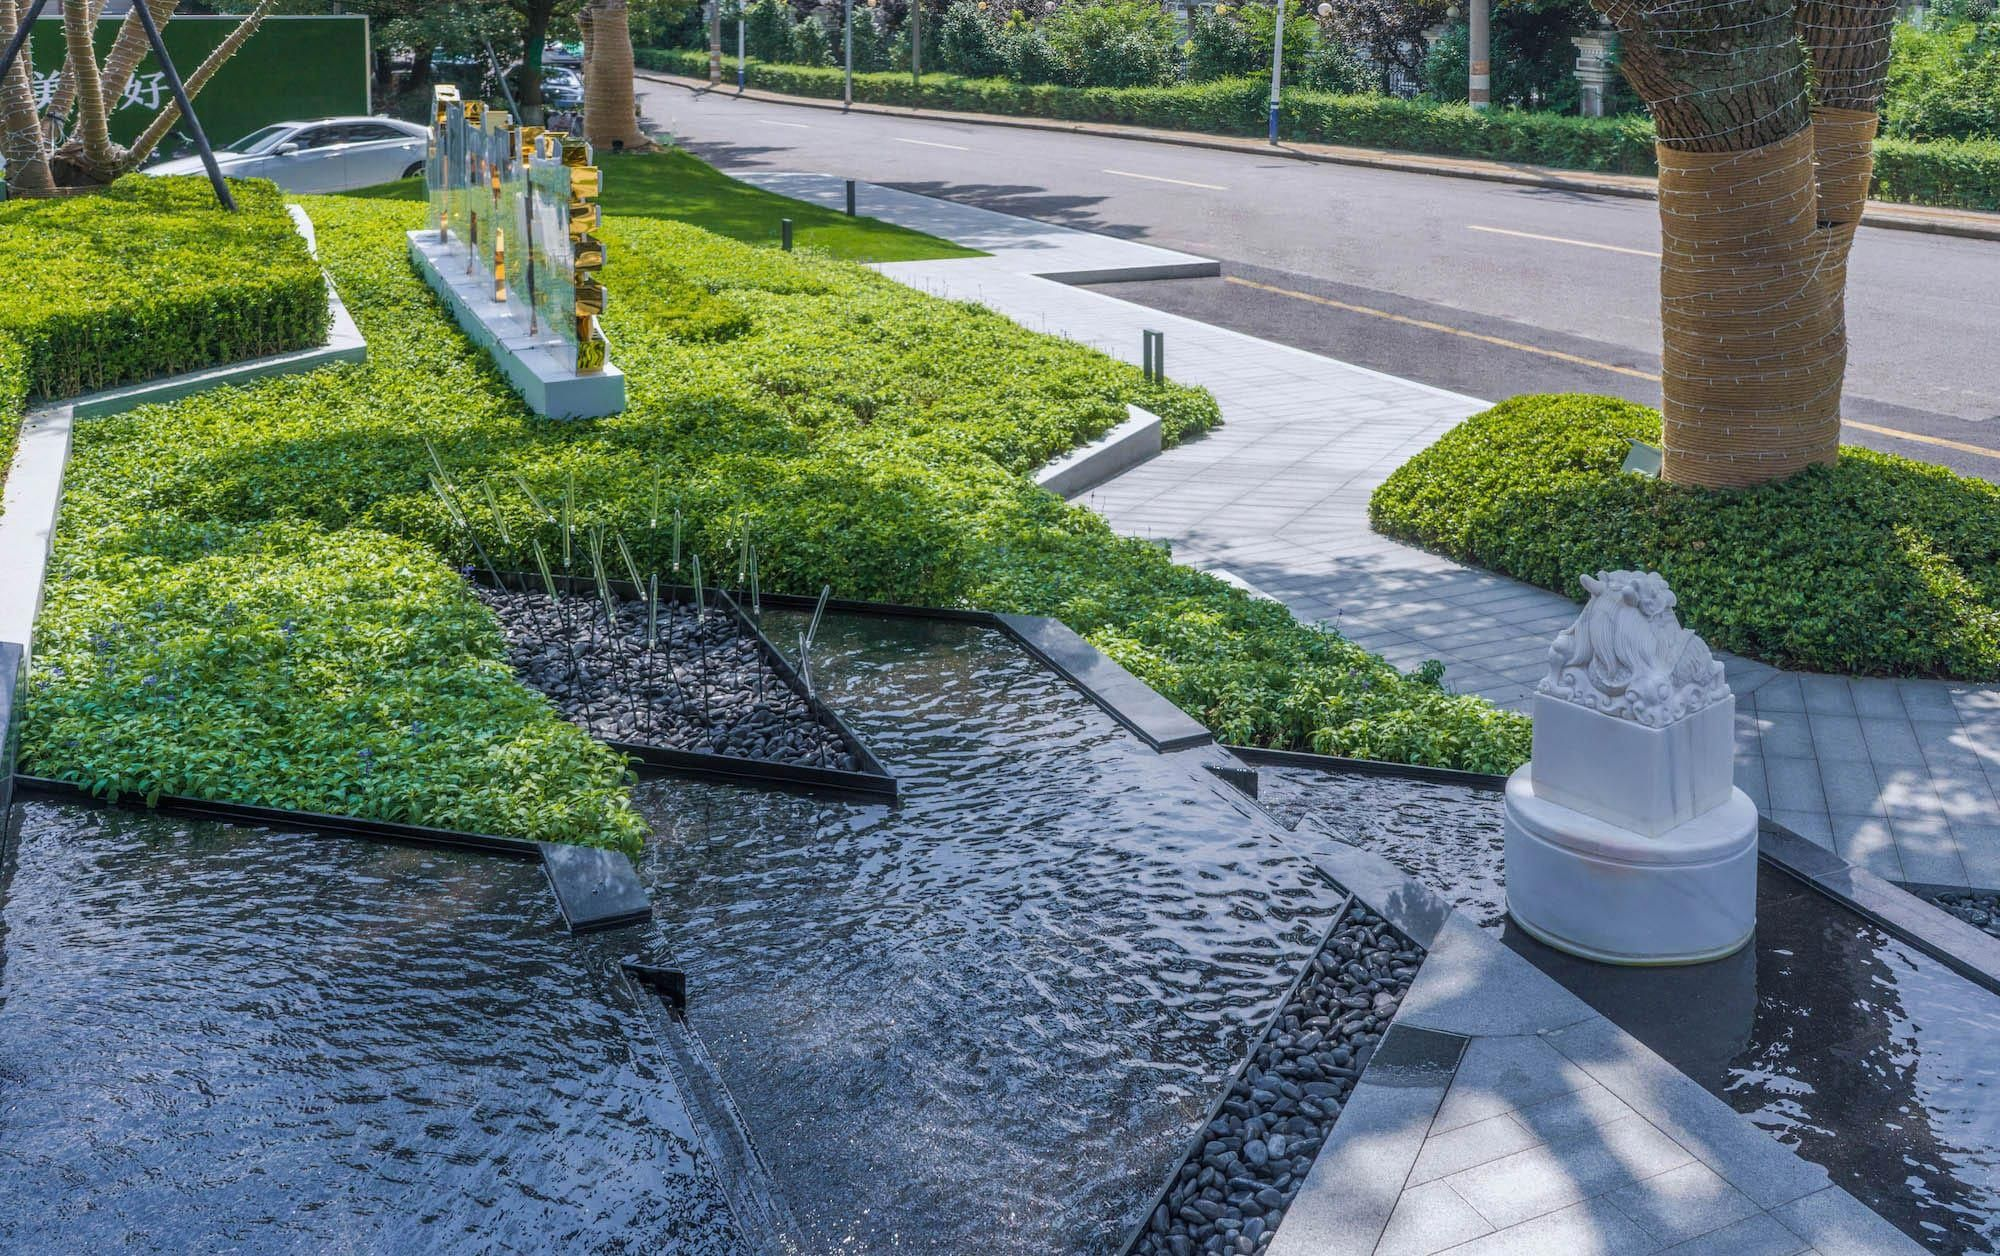 Residential Landscape Architecture Design Process For The Private Resi Landscape And Urbanism Architecture Landscape Architecture Design Landscape Architecture